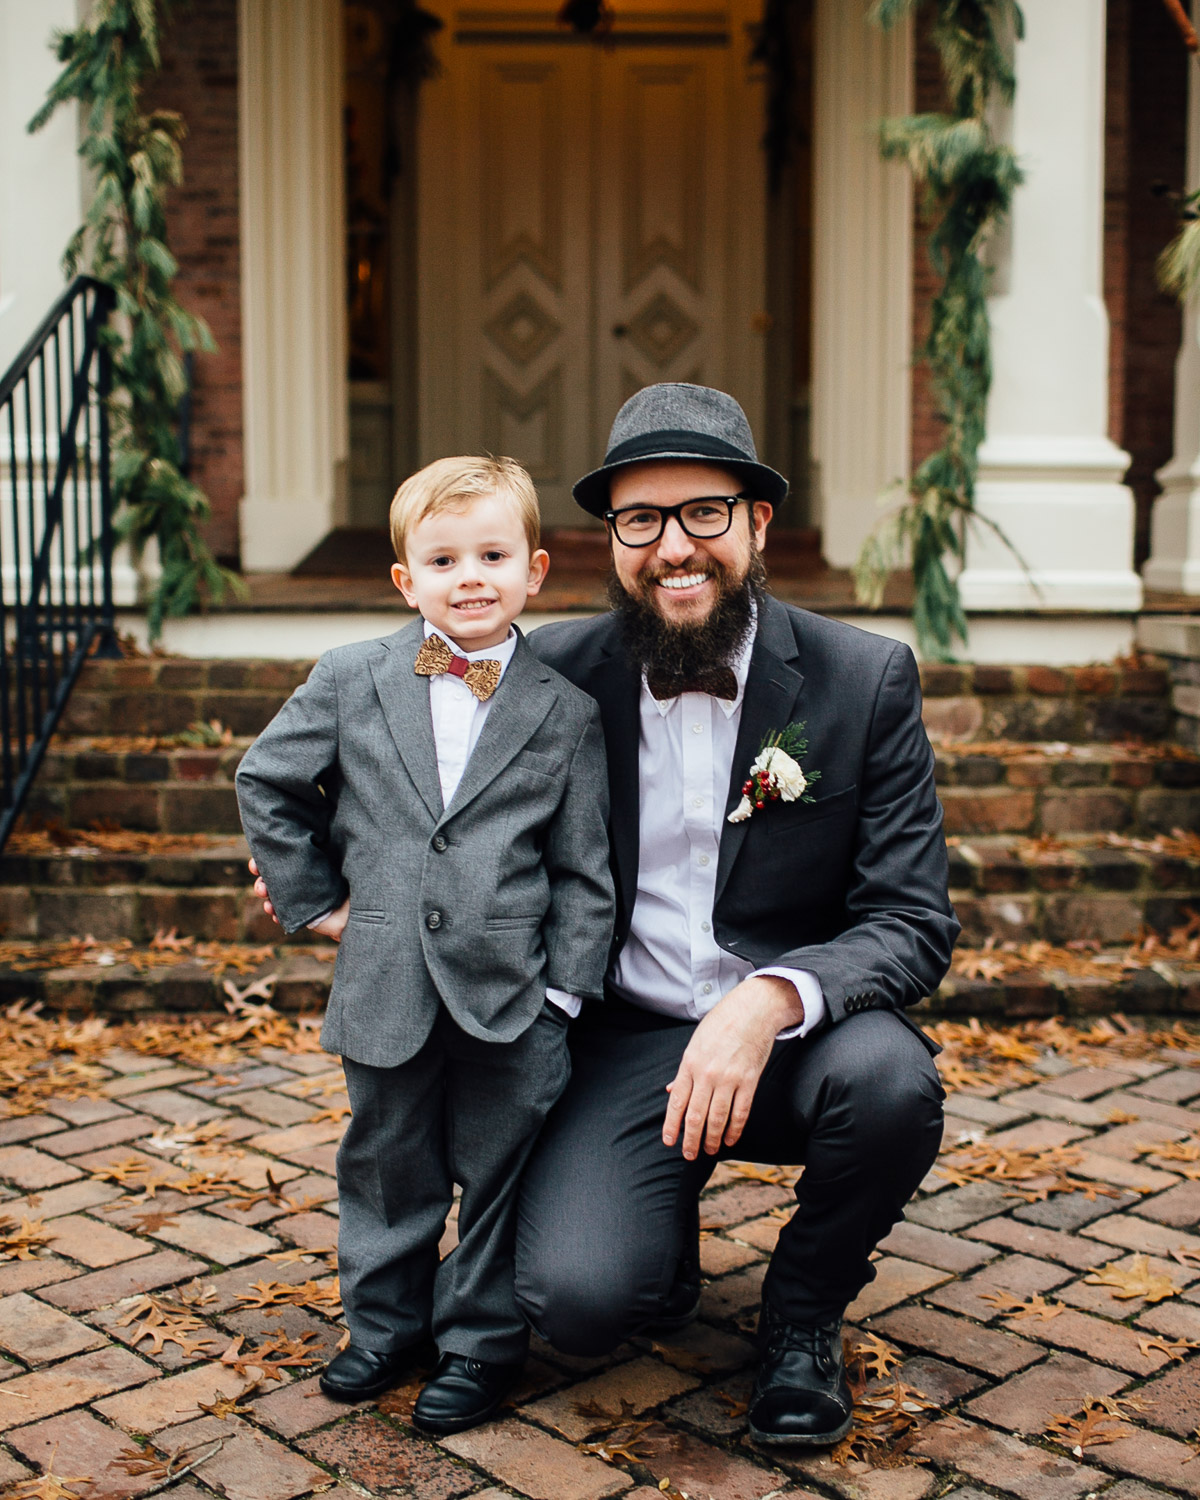 christmas-wedding-17-1 Cozy Christmas Wedding | Oaklands Mansion - Murfreesboro, TN